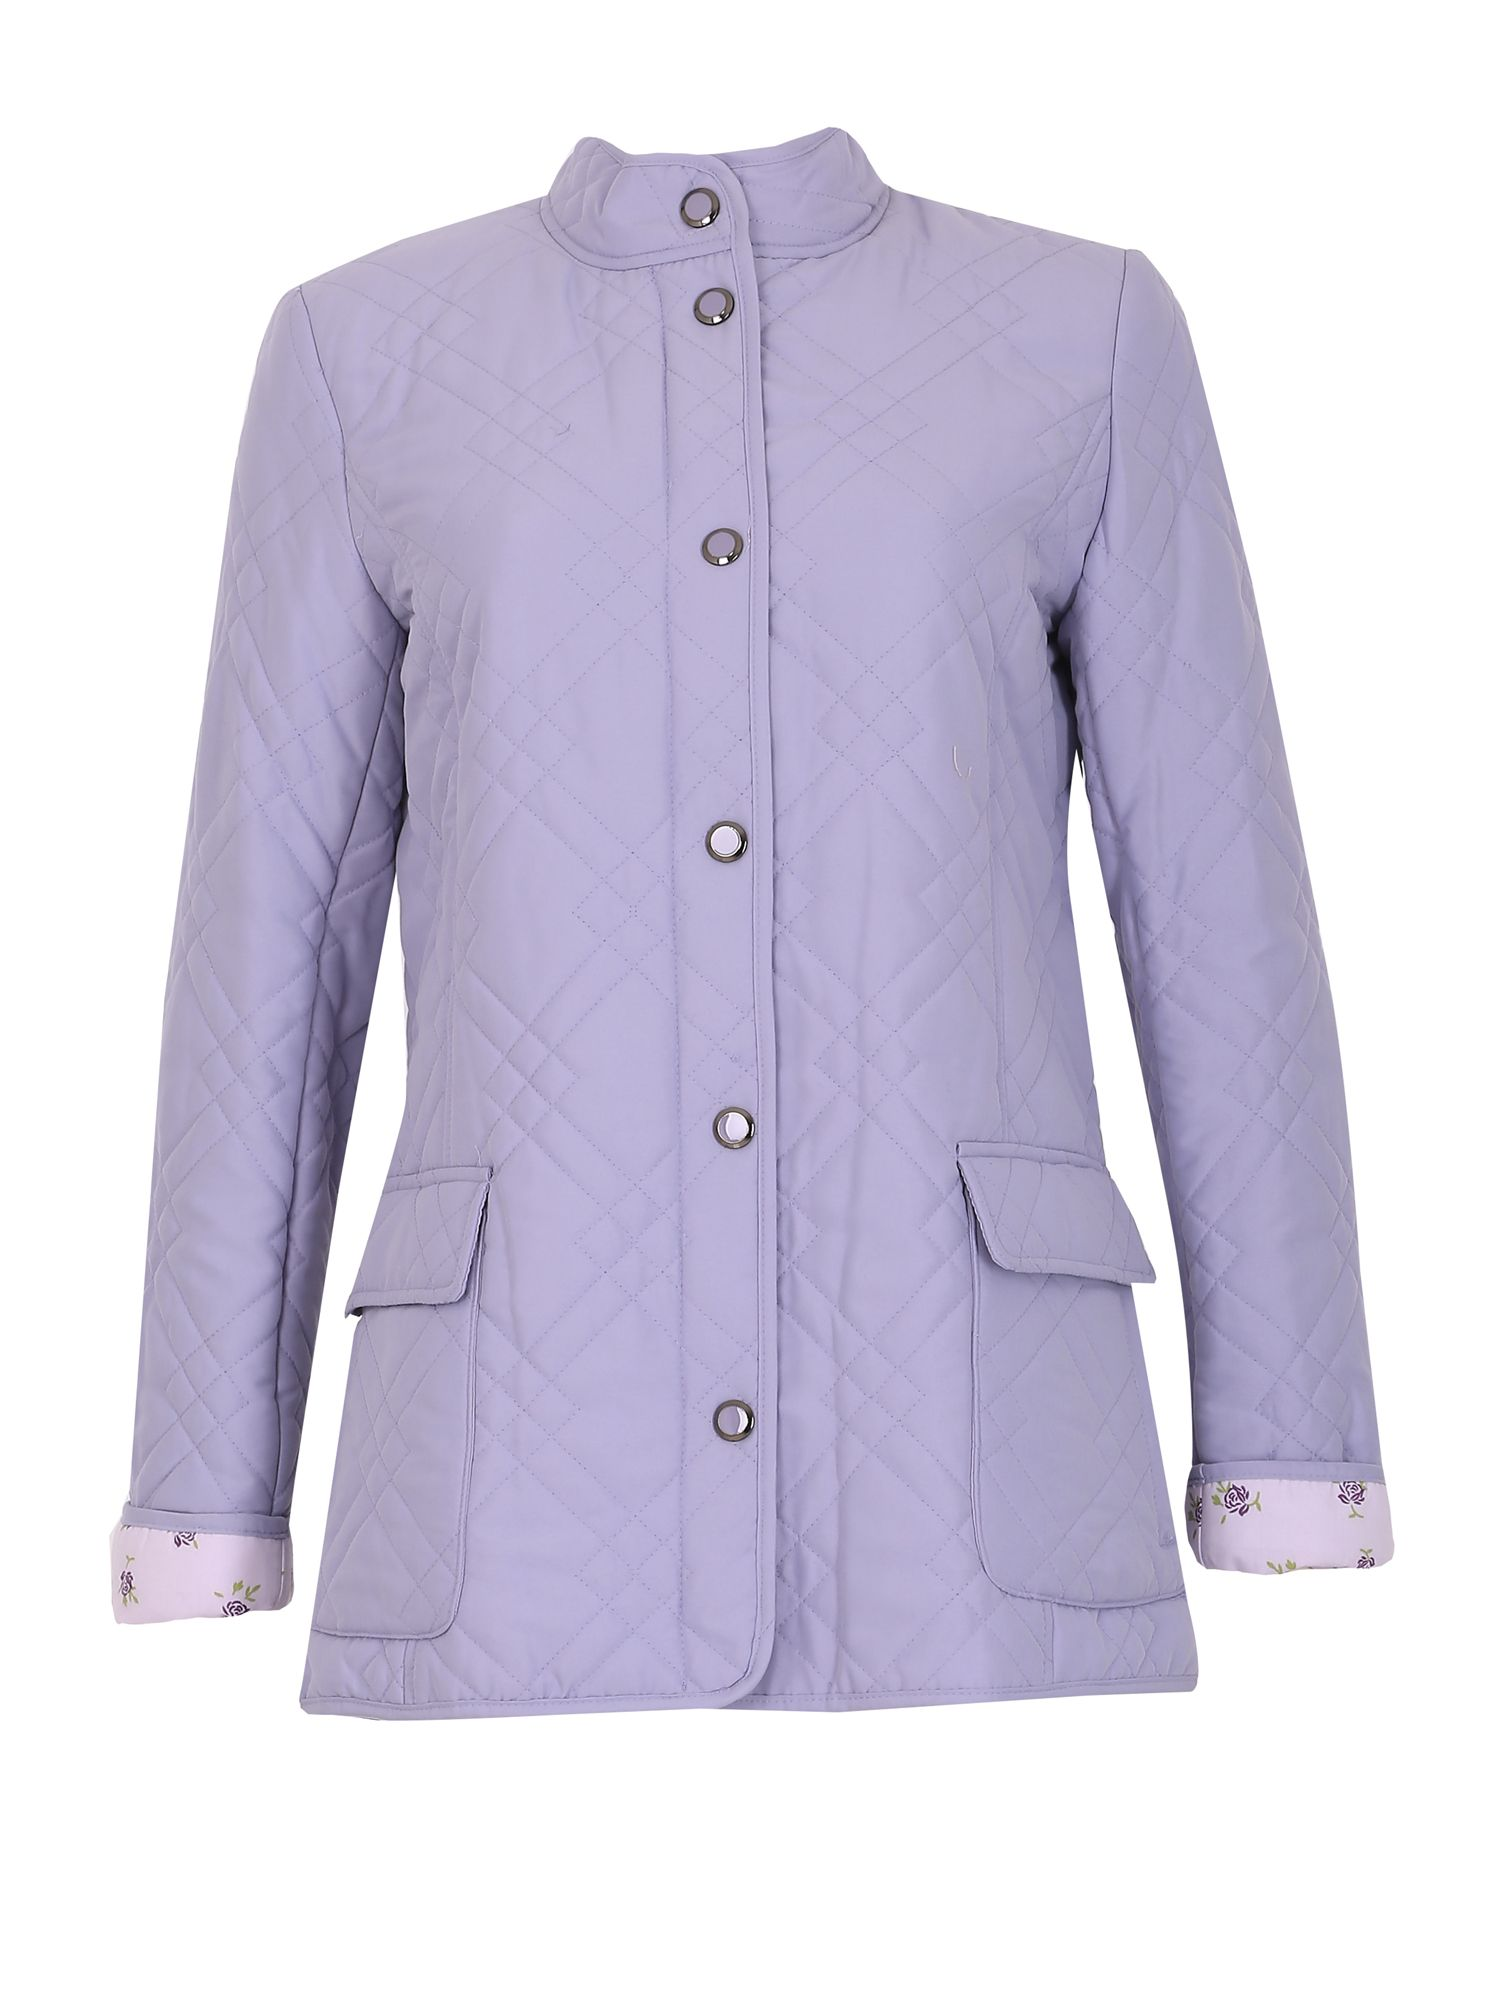 David Barry Light Weight Microfibre Quilted Jacket, Lilac